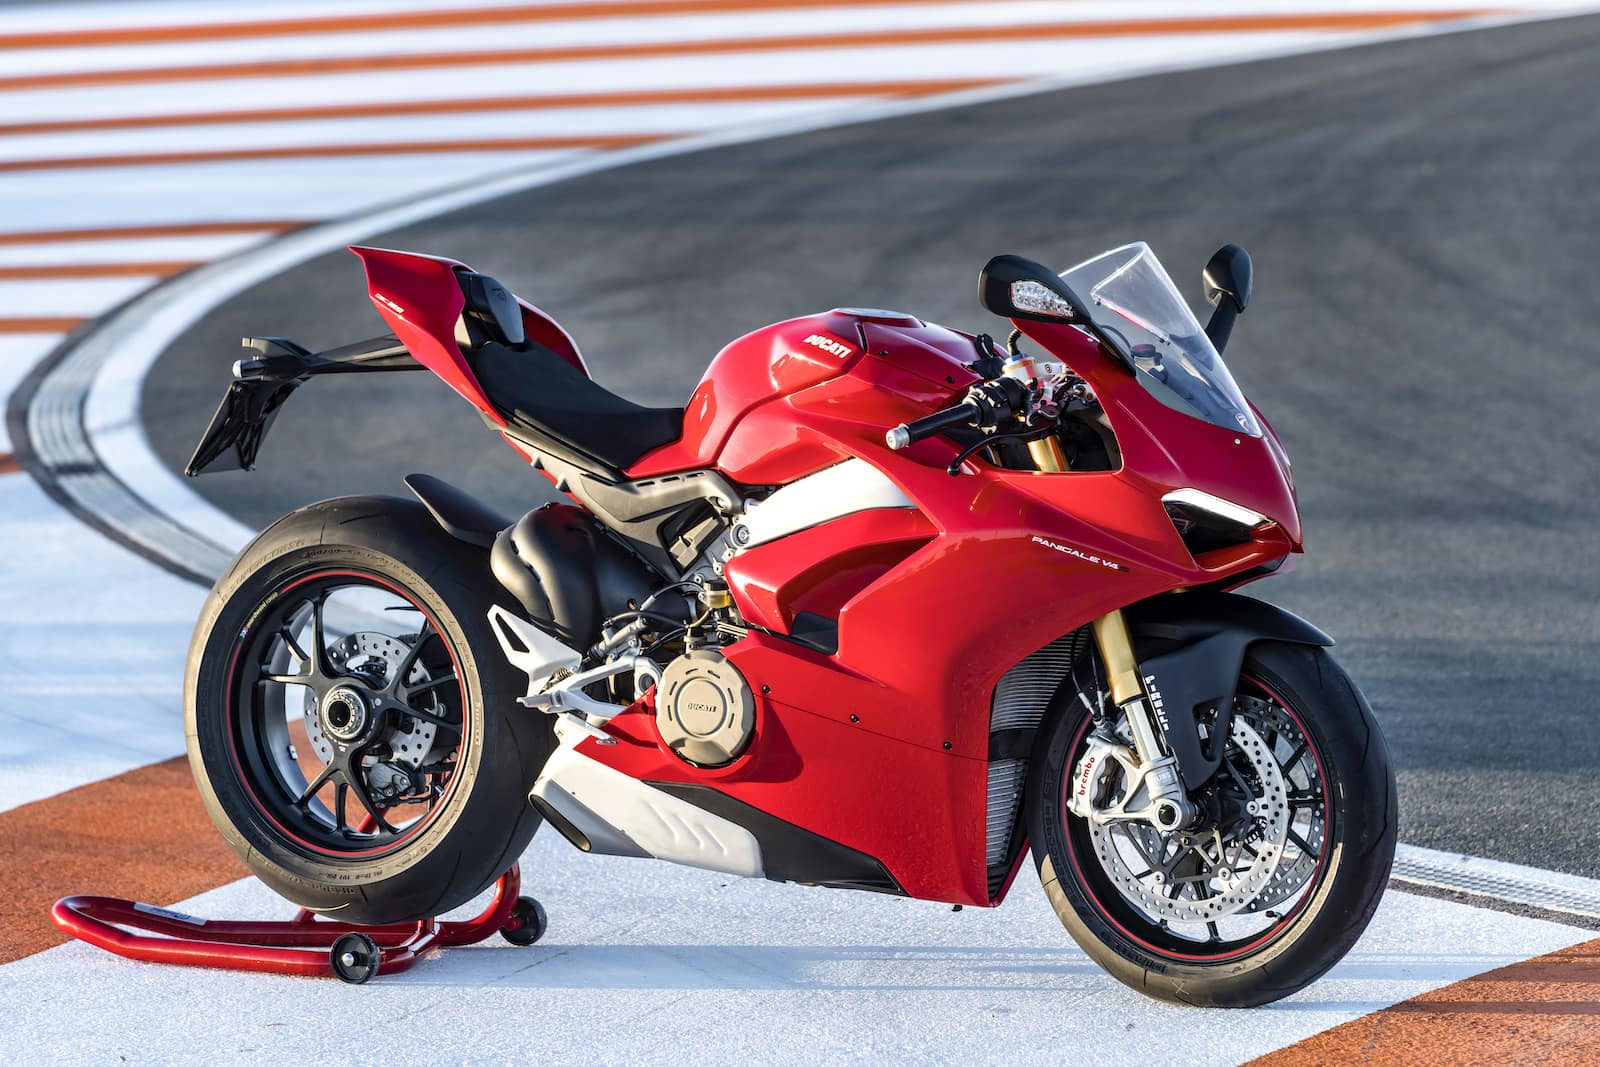 One of the most beautiful Ducati montorcycles, the 2018 Panigale V4